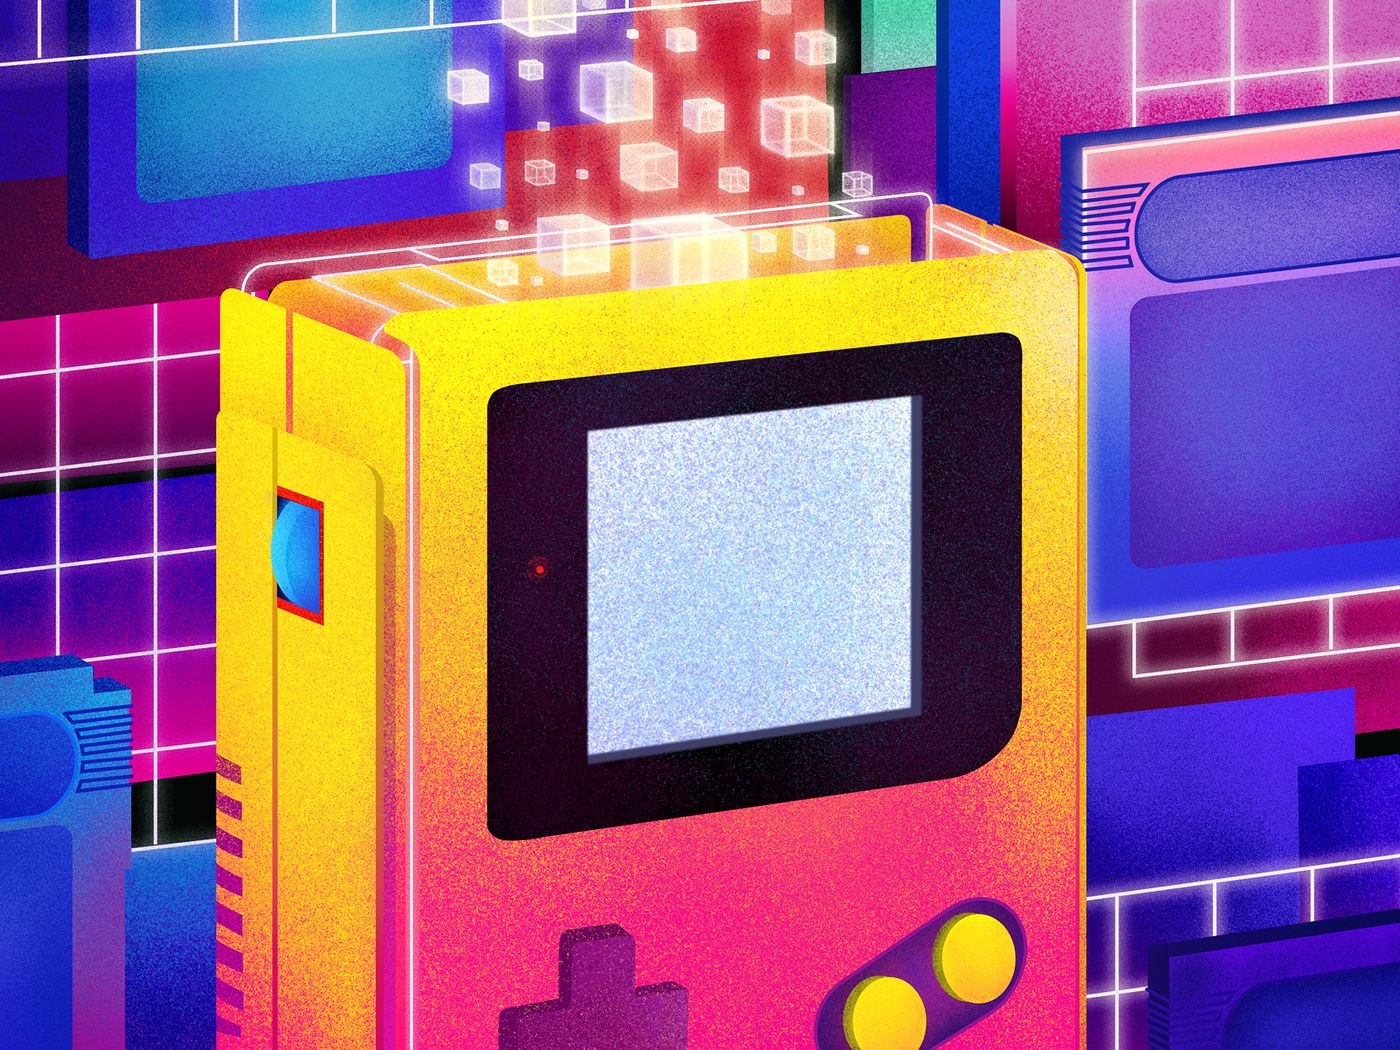 How the Game Boy found a new life through emulation - The Verge